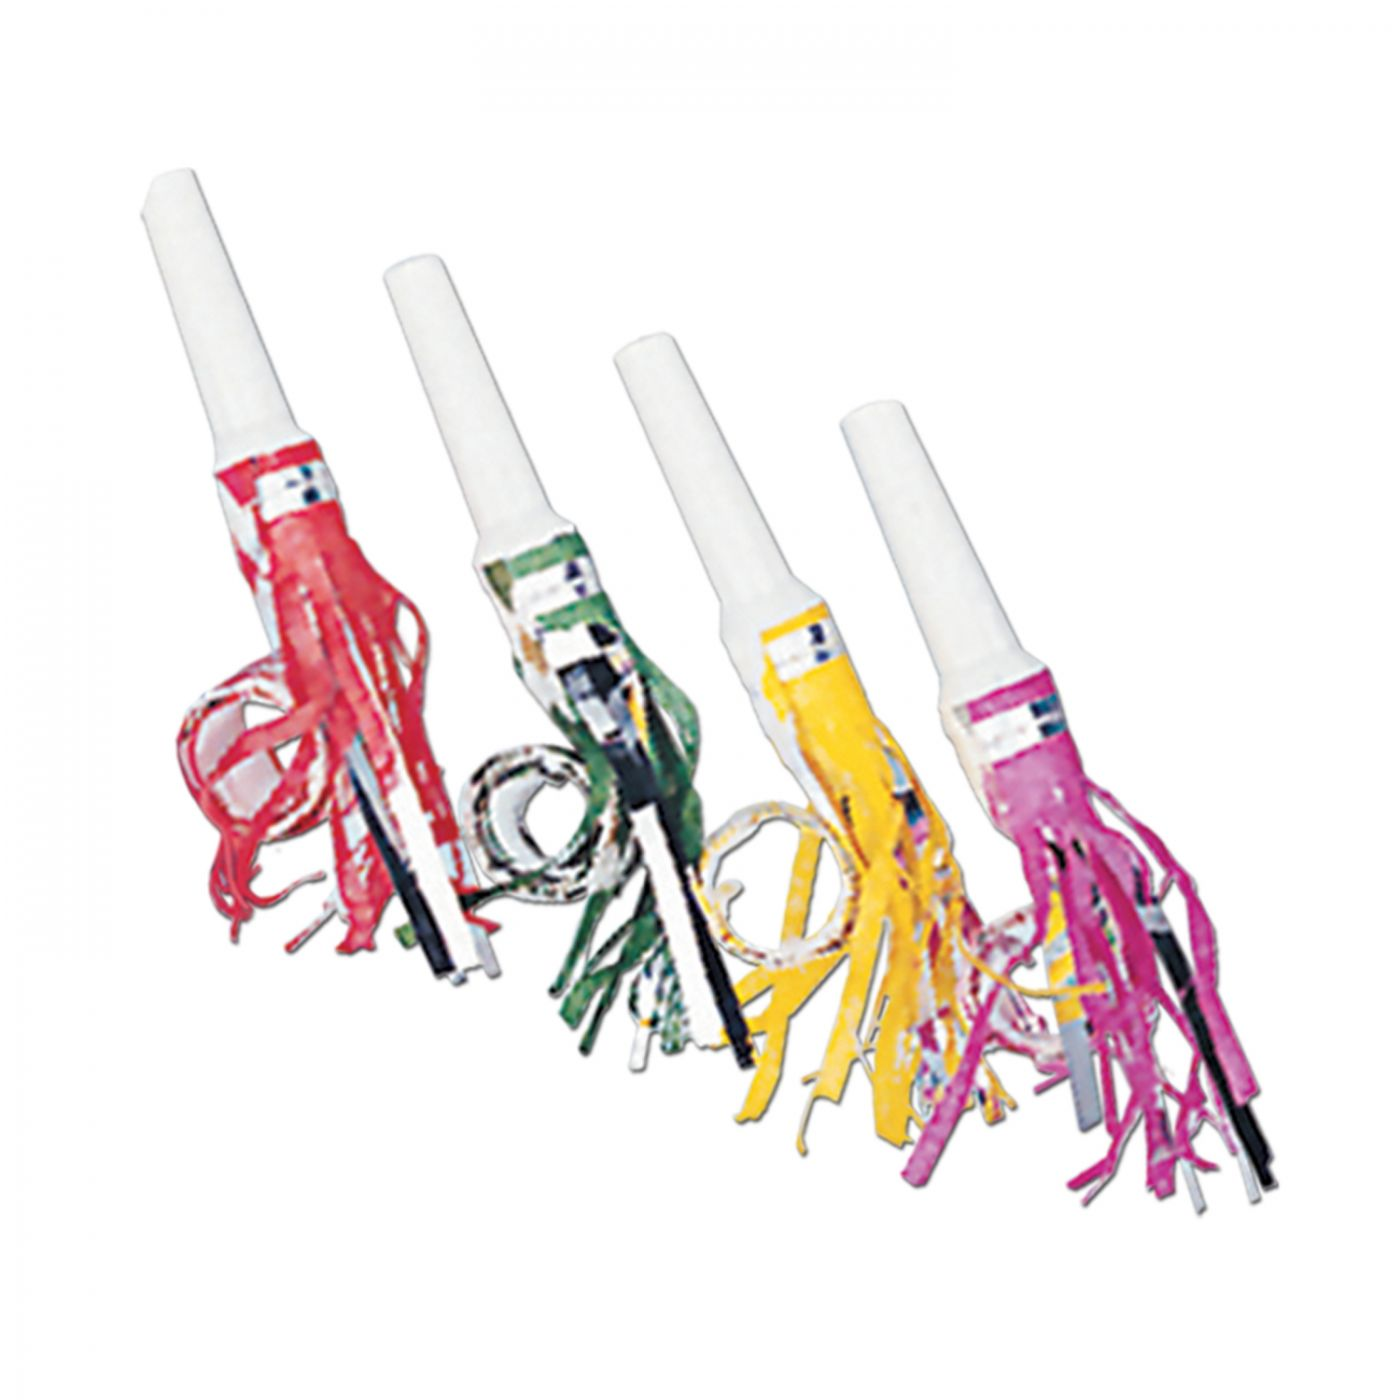 Pkgd Fringed Party Blowouts (48) image